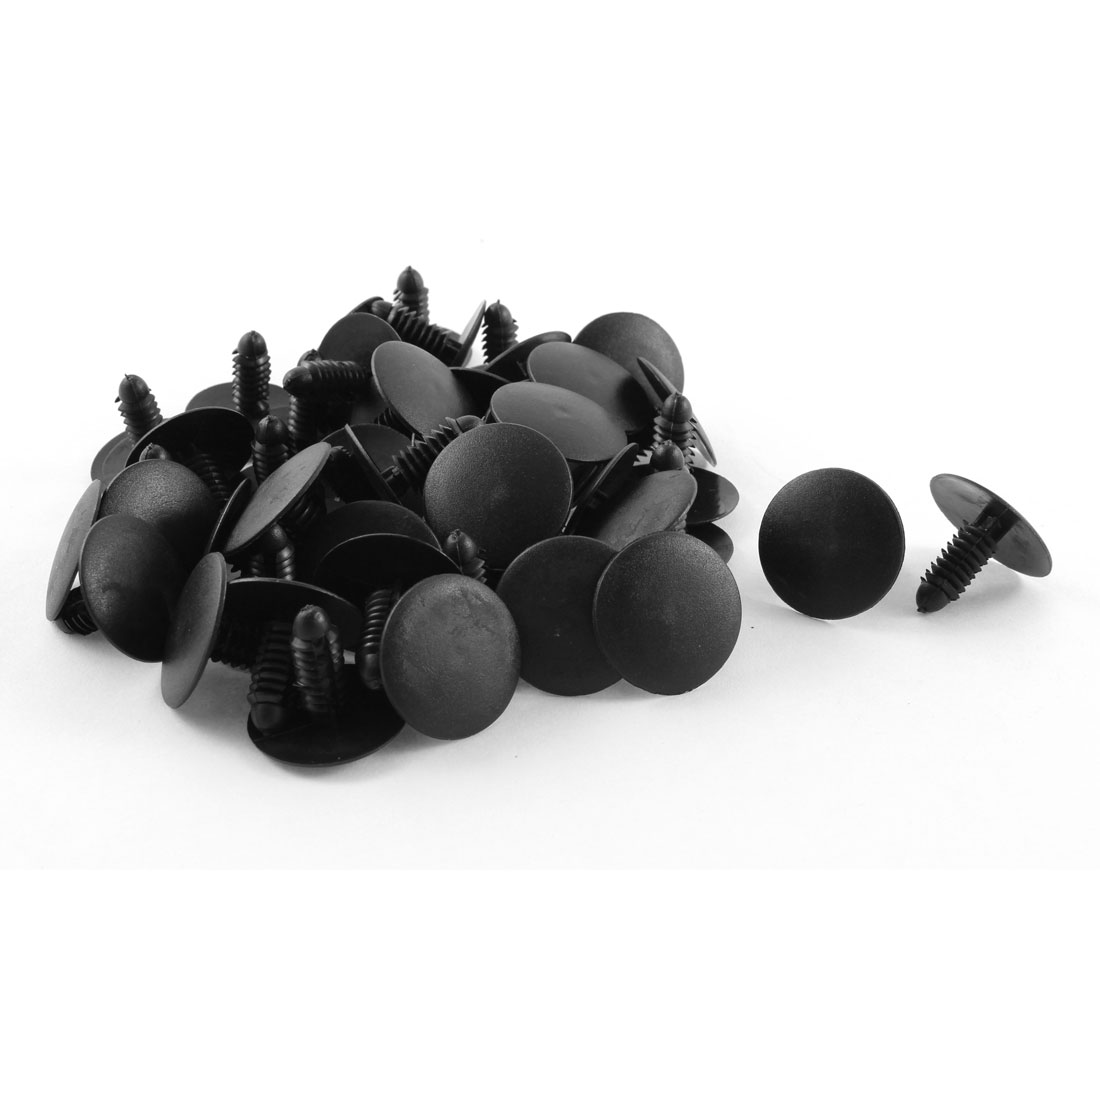 50 Pcs 25mm Head Dia Push in Plastic Rivets Car Door Panel Retainer Fastener Black